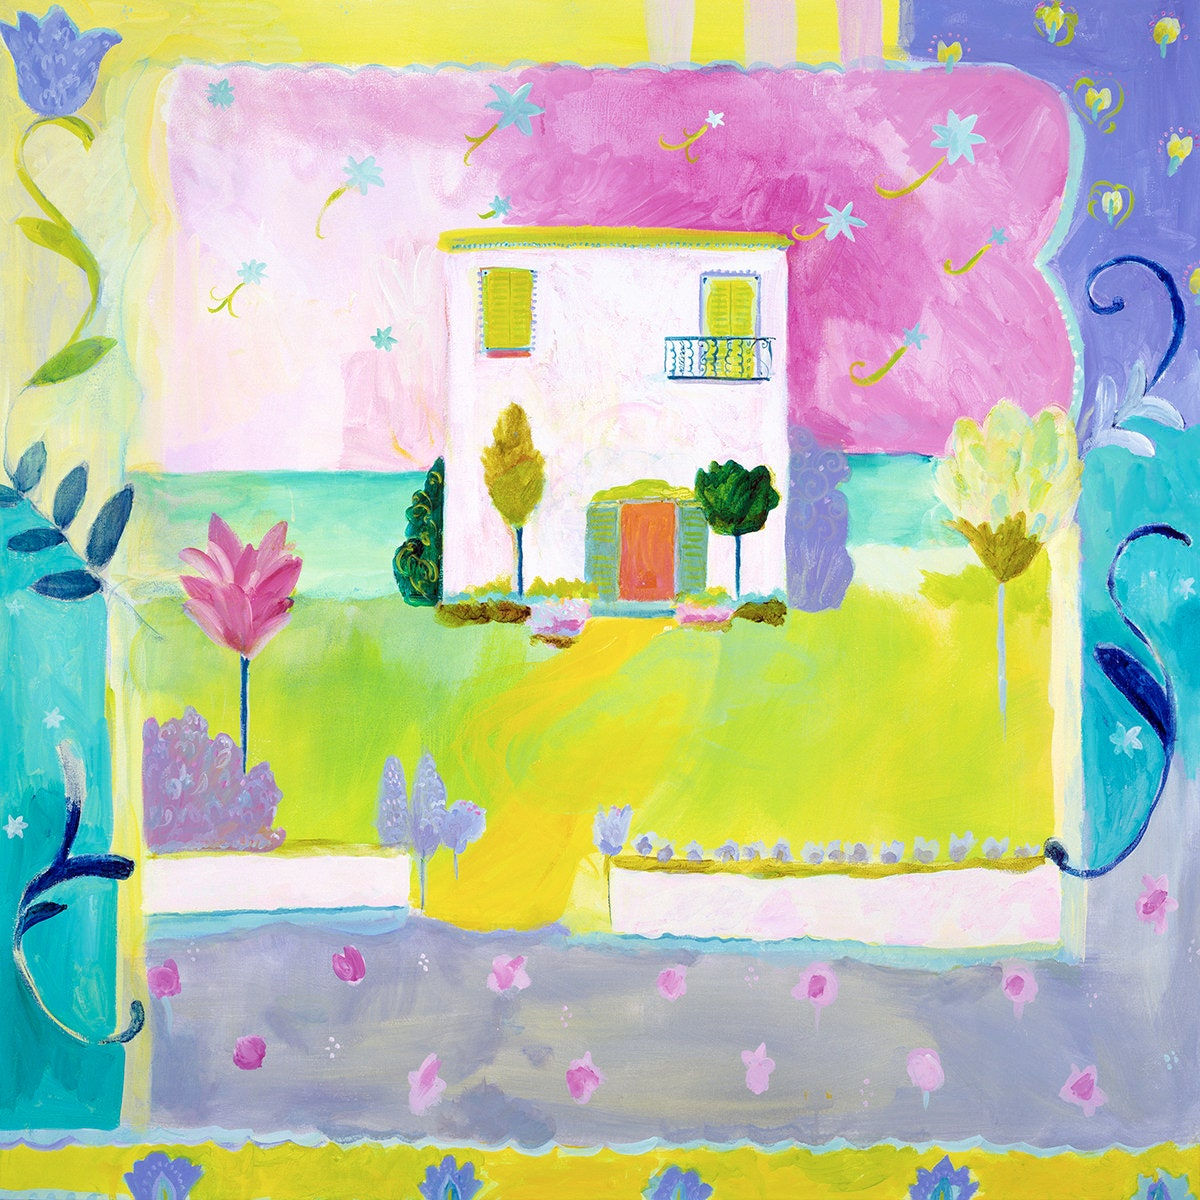 House by the sea canvas by Kimberly Hodges, 18x18 canvas, 24x24 ...